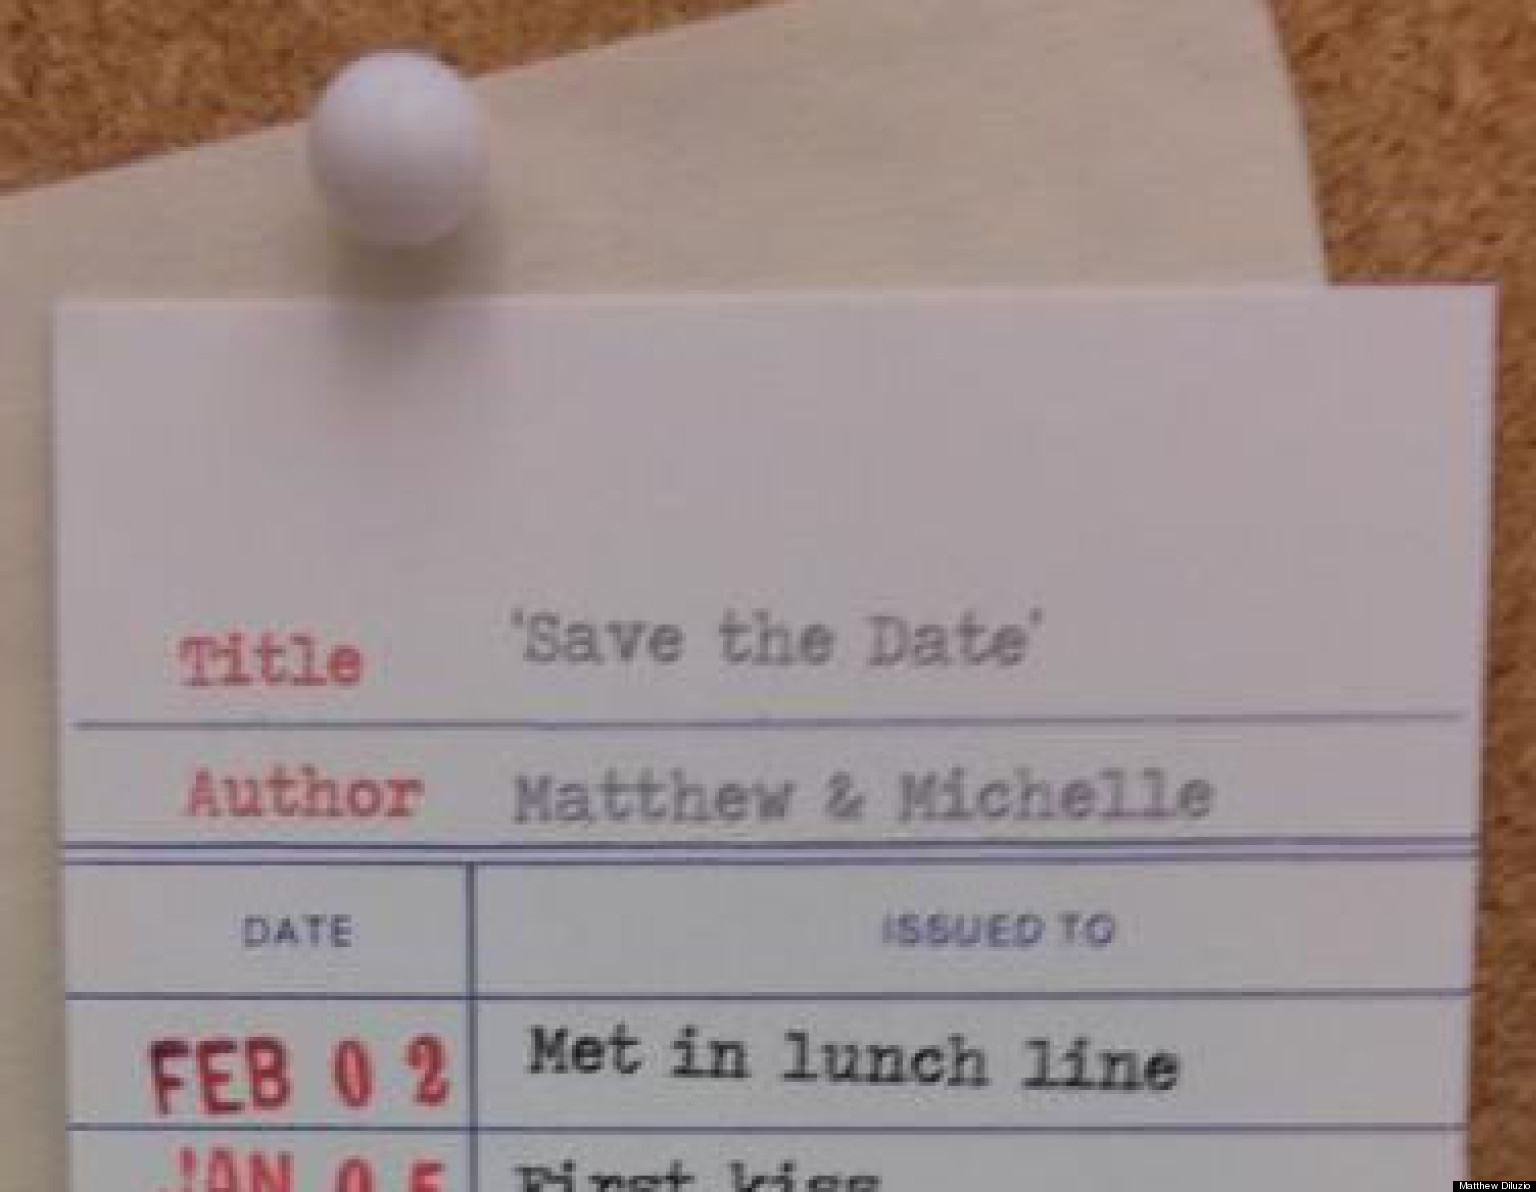 unique save the date card amazing stationery modeled after library checkout card photo huffpost